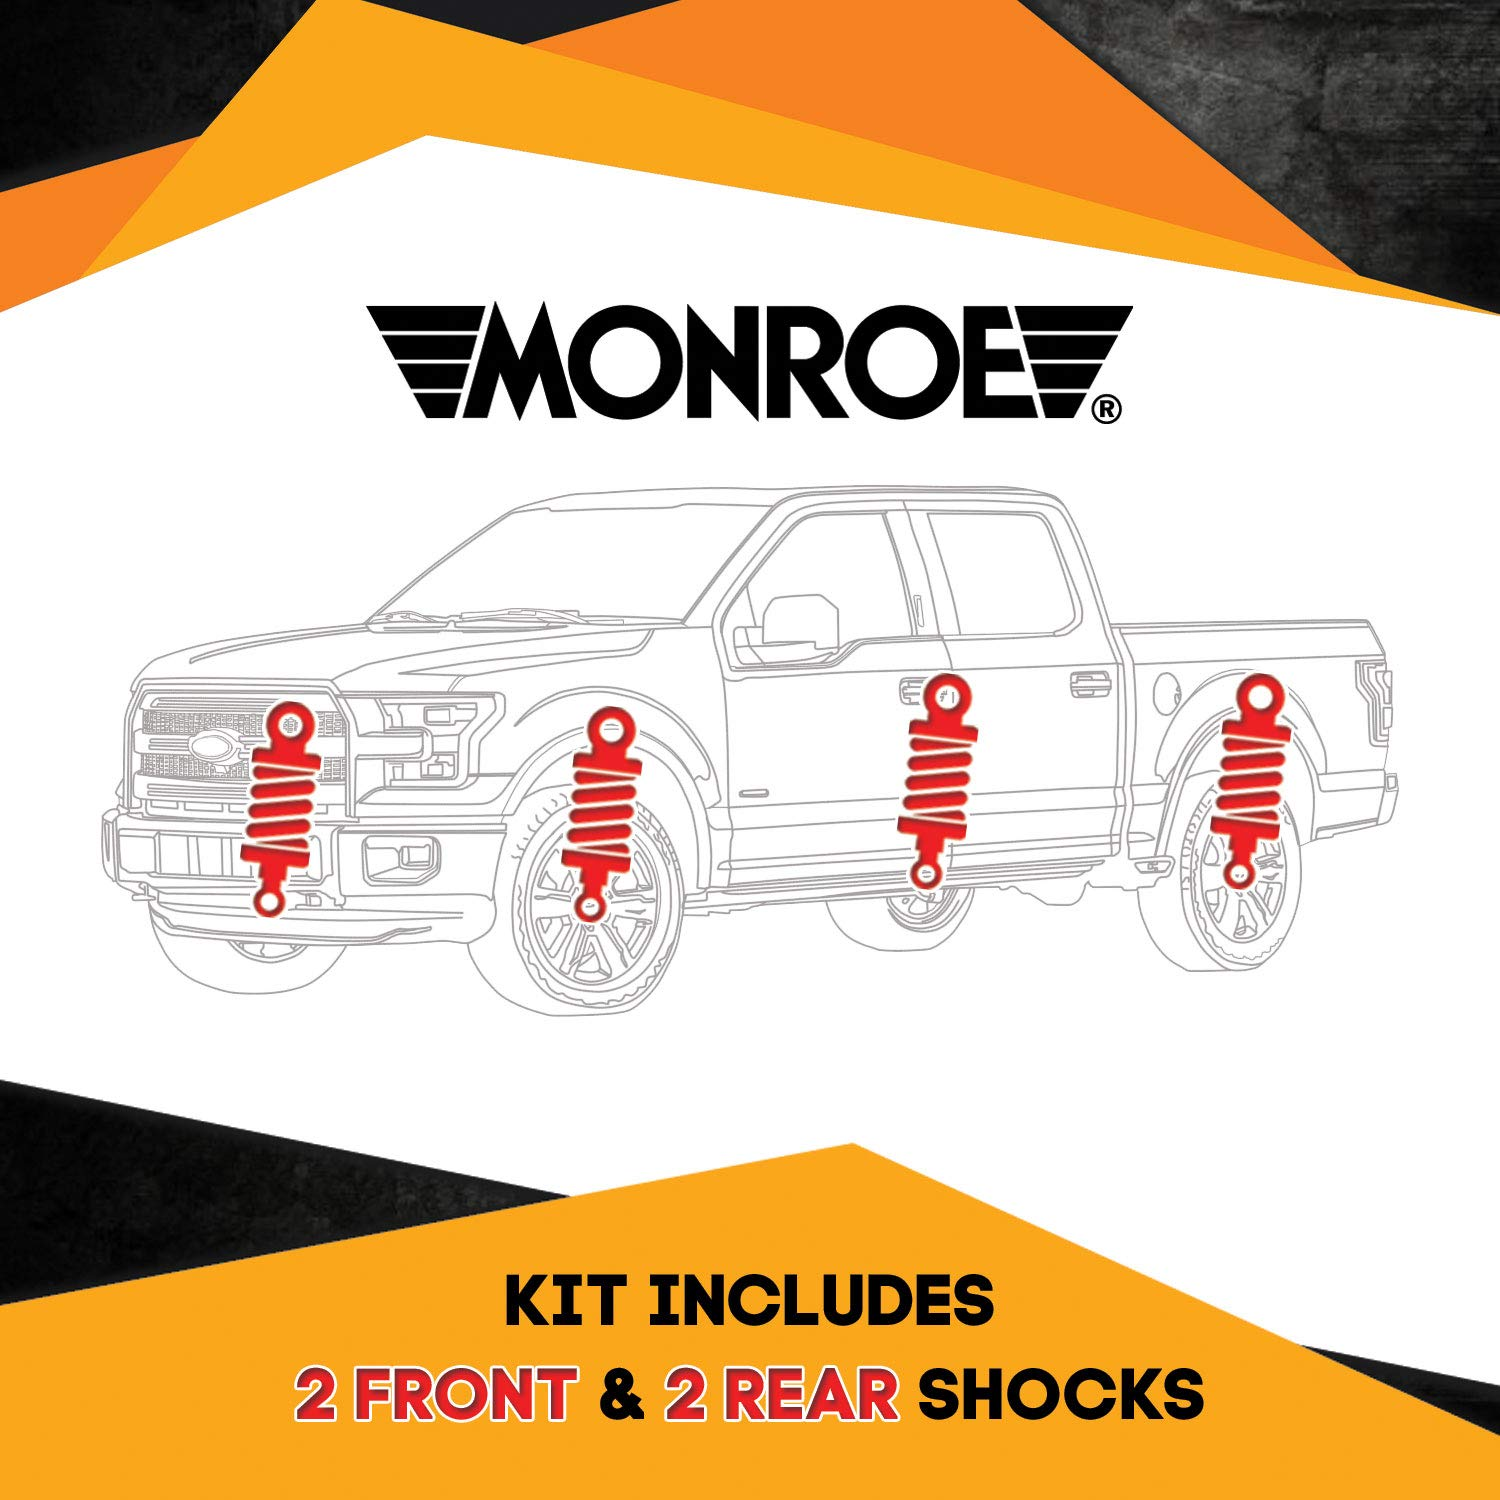 Leveling Performance Touring /& Offroad Monroe Quick Mount Kit of 4 Shocks fits Chevrolet C2500 Suburban 1993-1999 Monro-Matic Plus Front /& Rear for Replacement